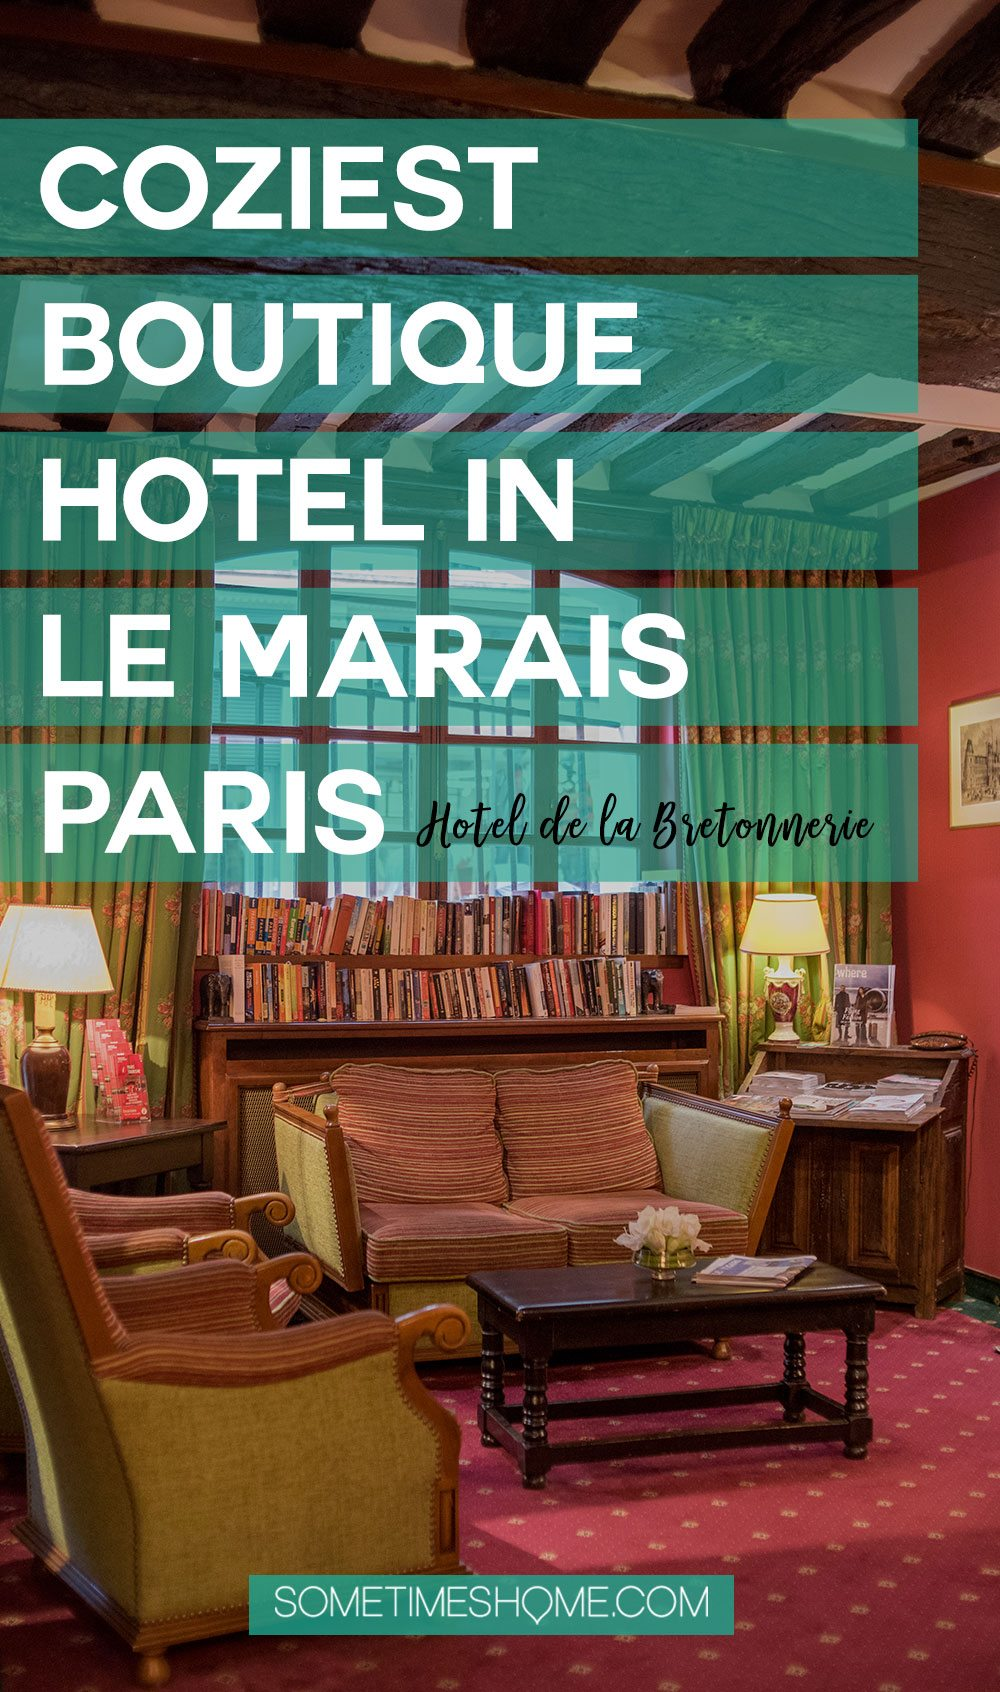 Le Marais Paris Accommodation at Hotel de la Bretonnerie. Find out why this boutique hotel is the coziest around! It's an affordable stay in the Marais district, with balcony view options to behold and beautiful interior suites as well. Click through to the article for a complete review! #parishotel #lemaraisparis #maraisparis #boutiquehotelsparis